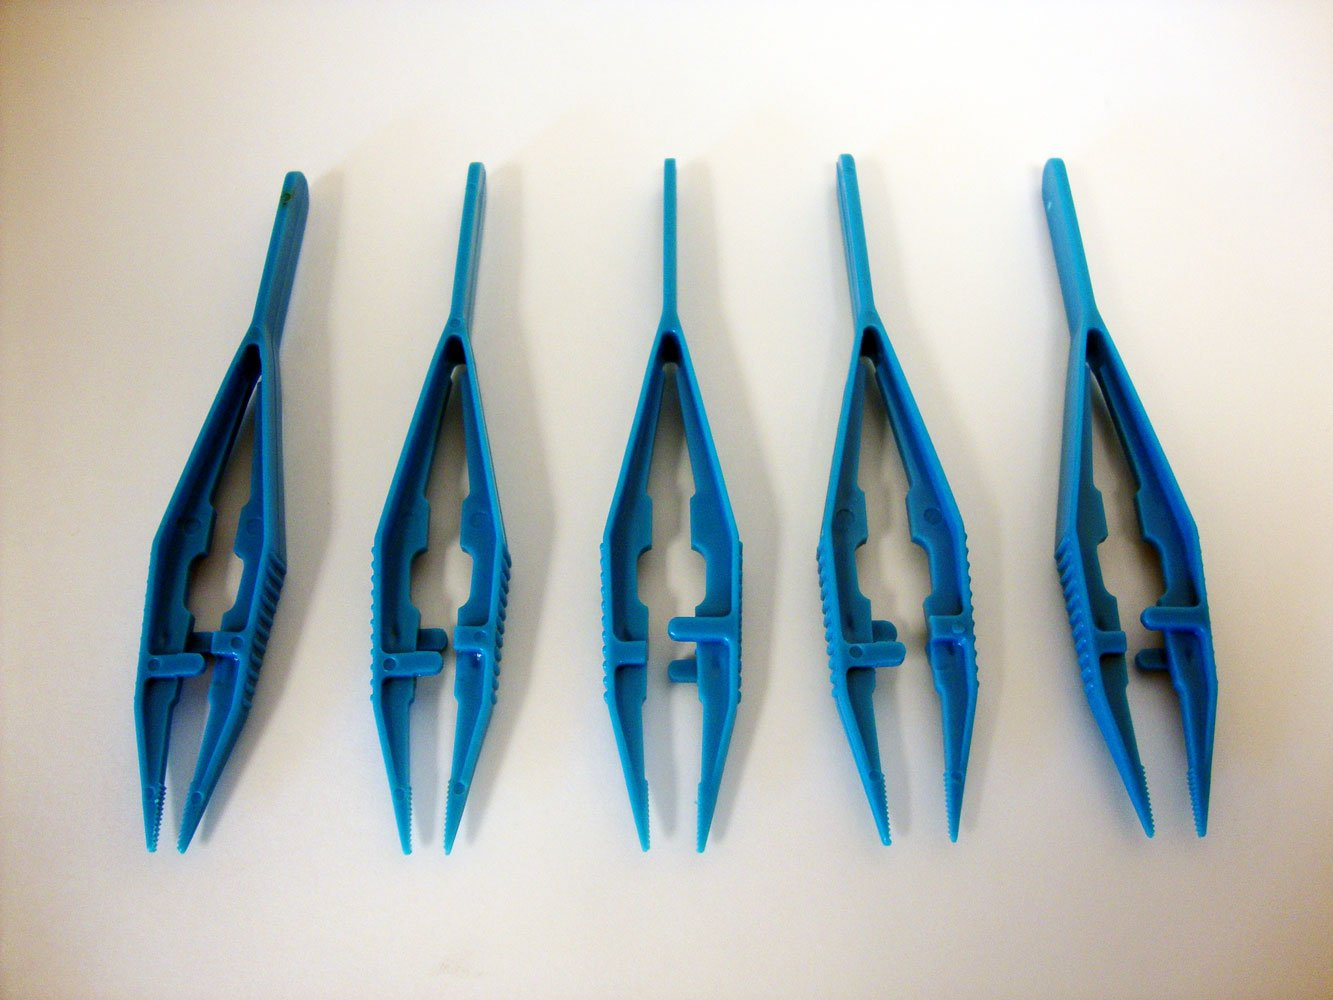 Fine Serrated Tip Plastic Forceps, Classpack of 30(Free USPS Shipping)